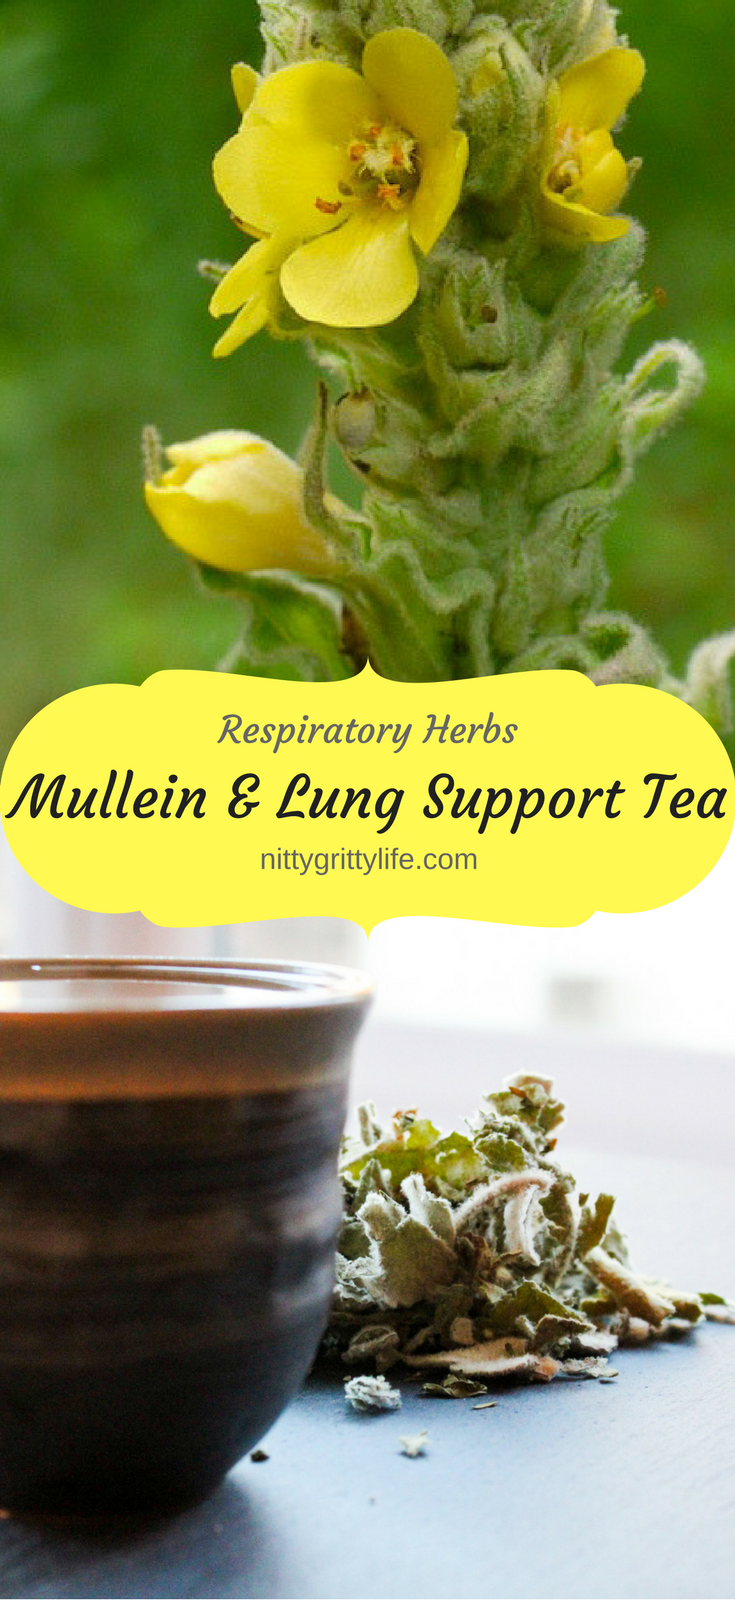 Mullein is a common and easy to identify wild herb possessing an abundance of medicinal benefits with a particular affinity for the respiratory system.